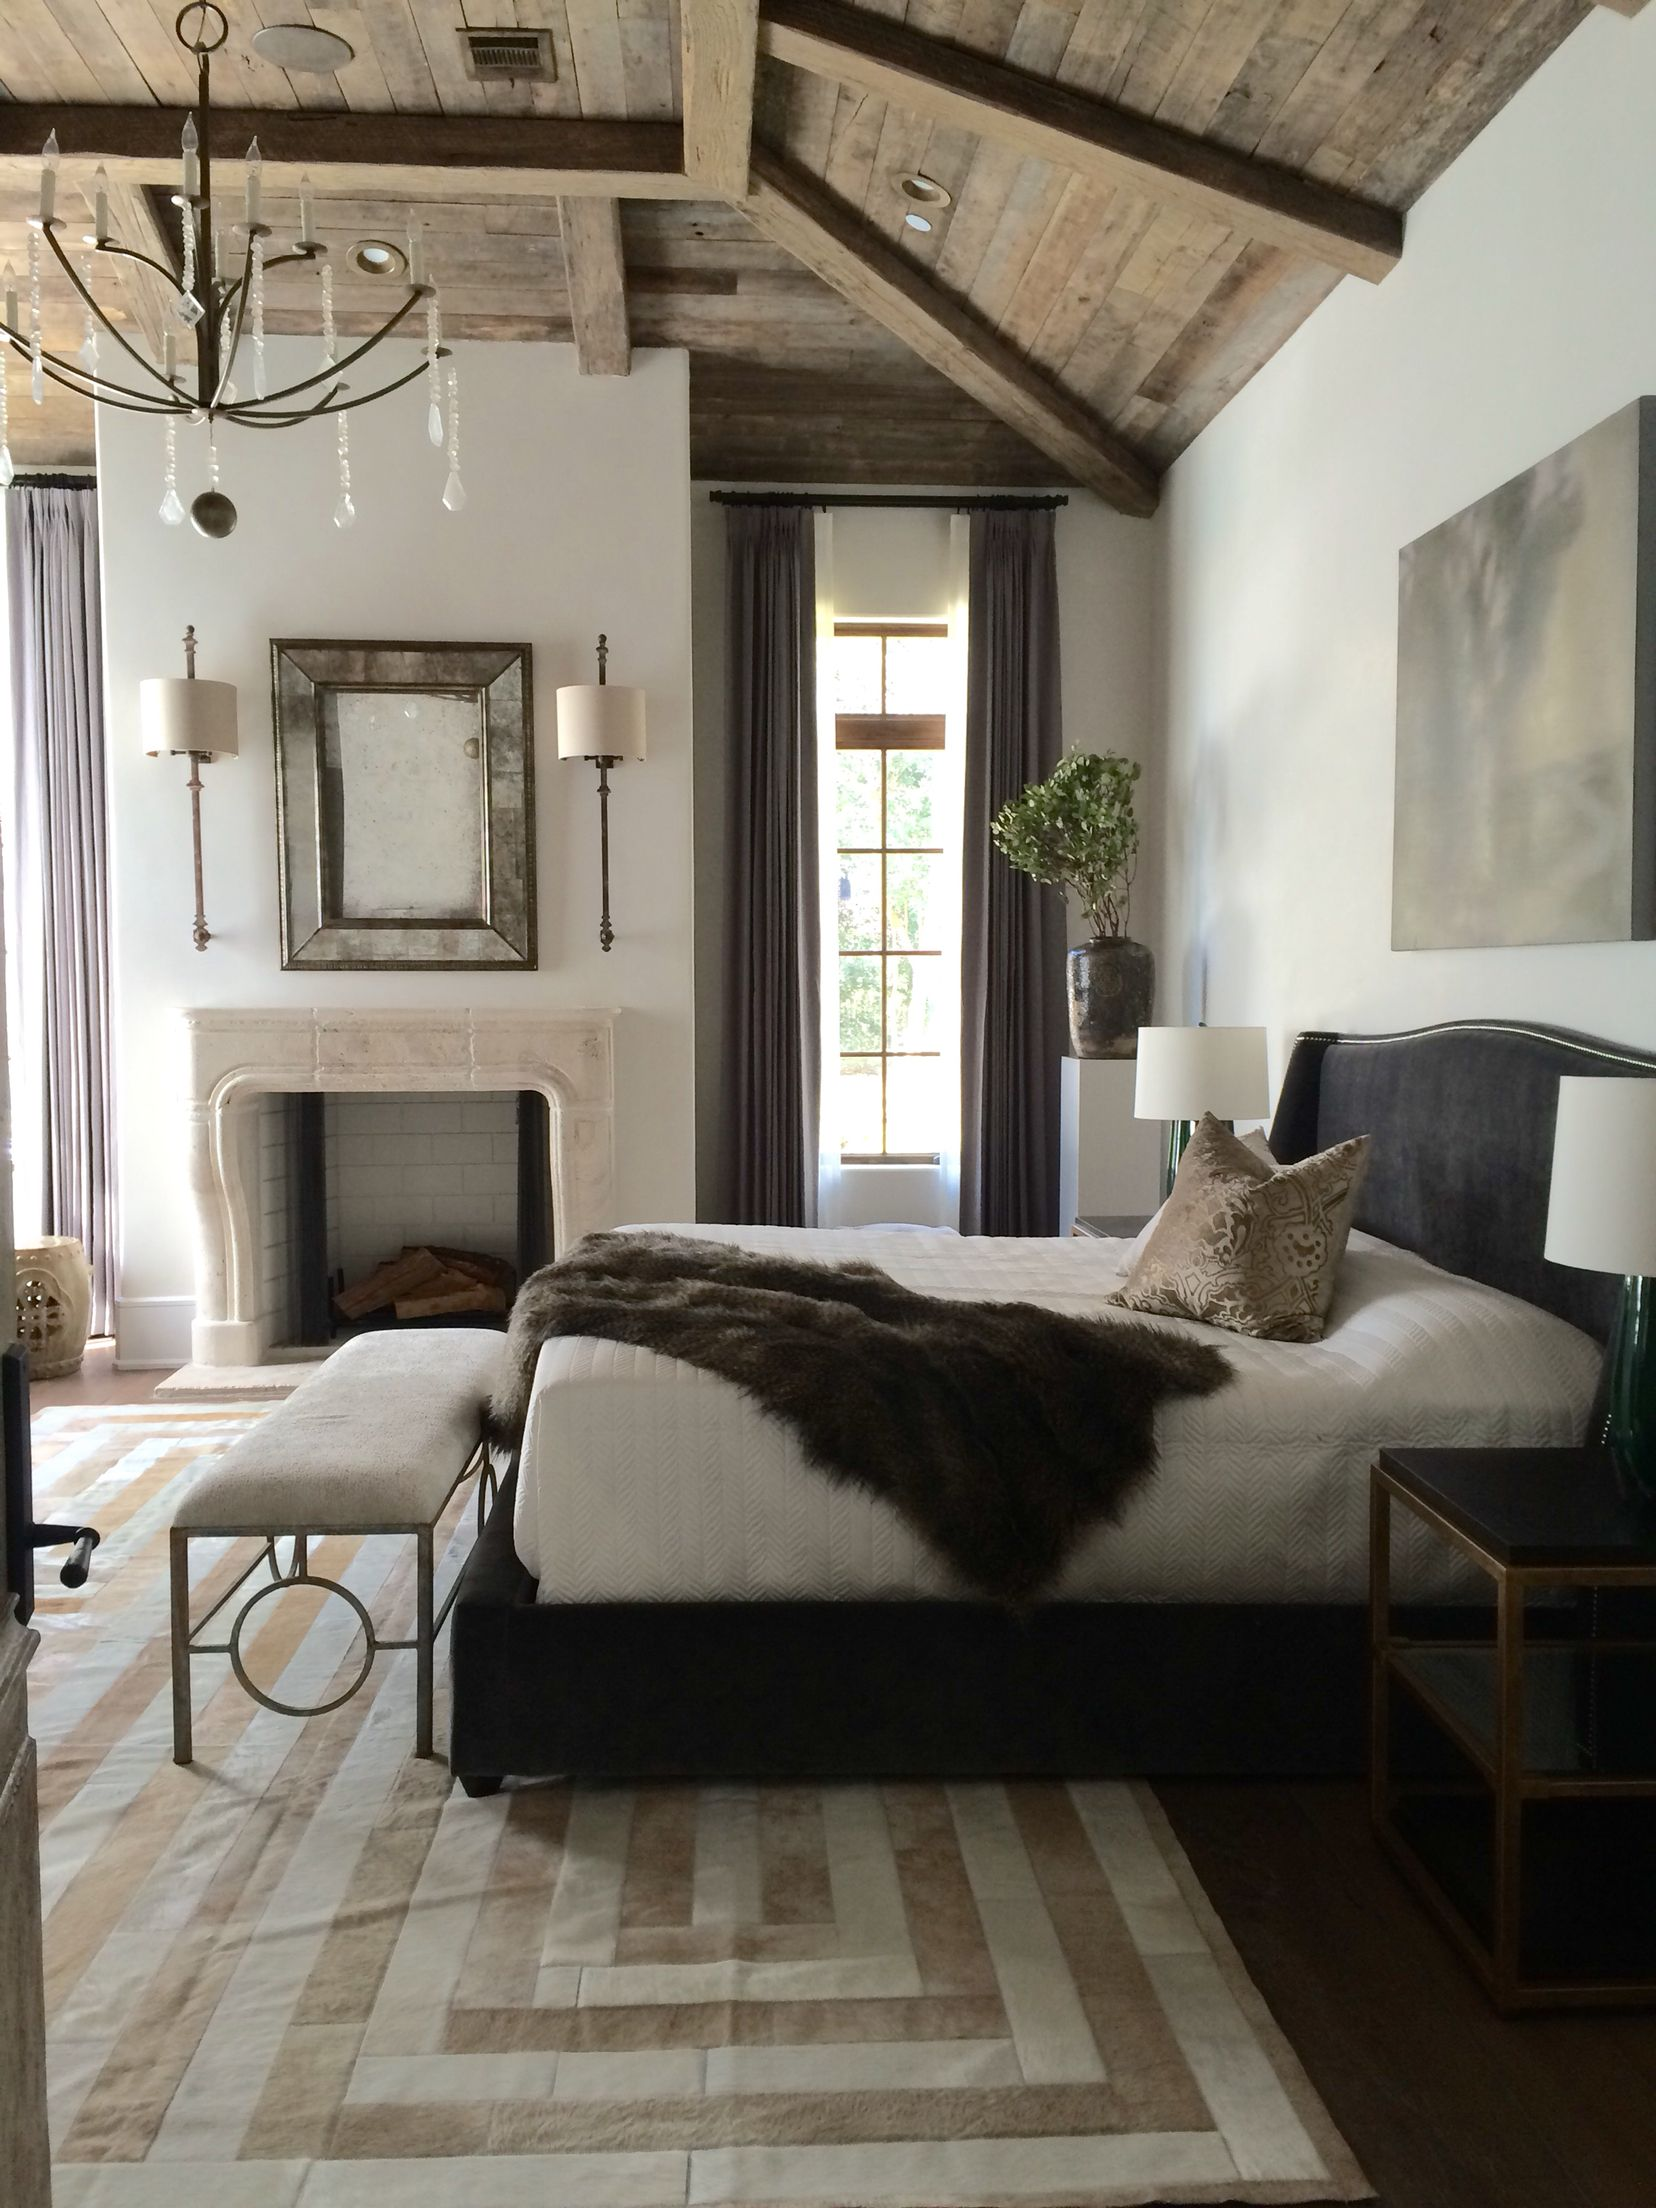 Pin By Bromleigh Hales On For The Home Rustic Master Bedroom